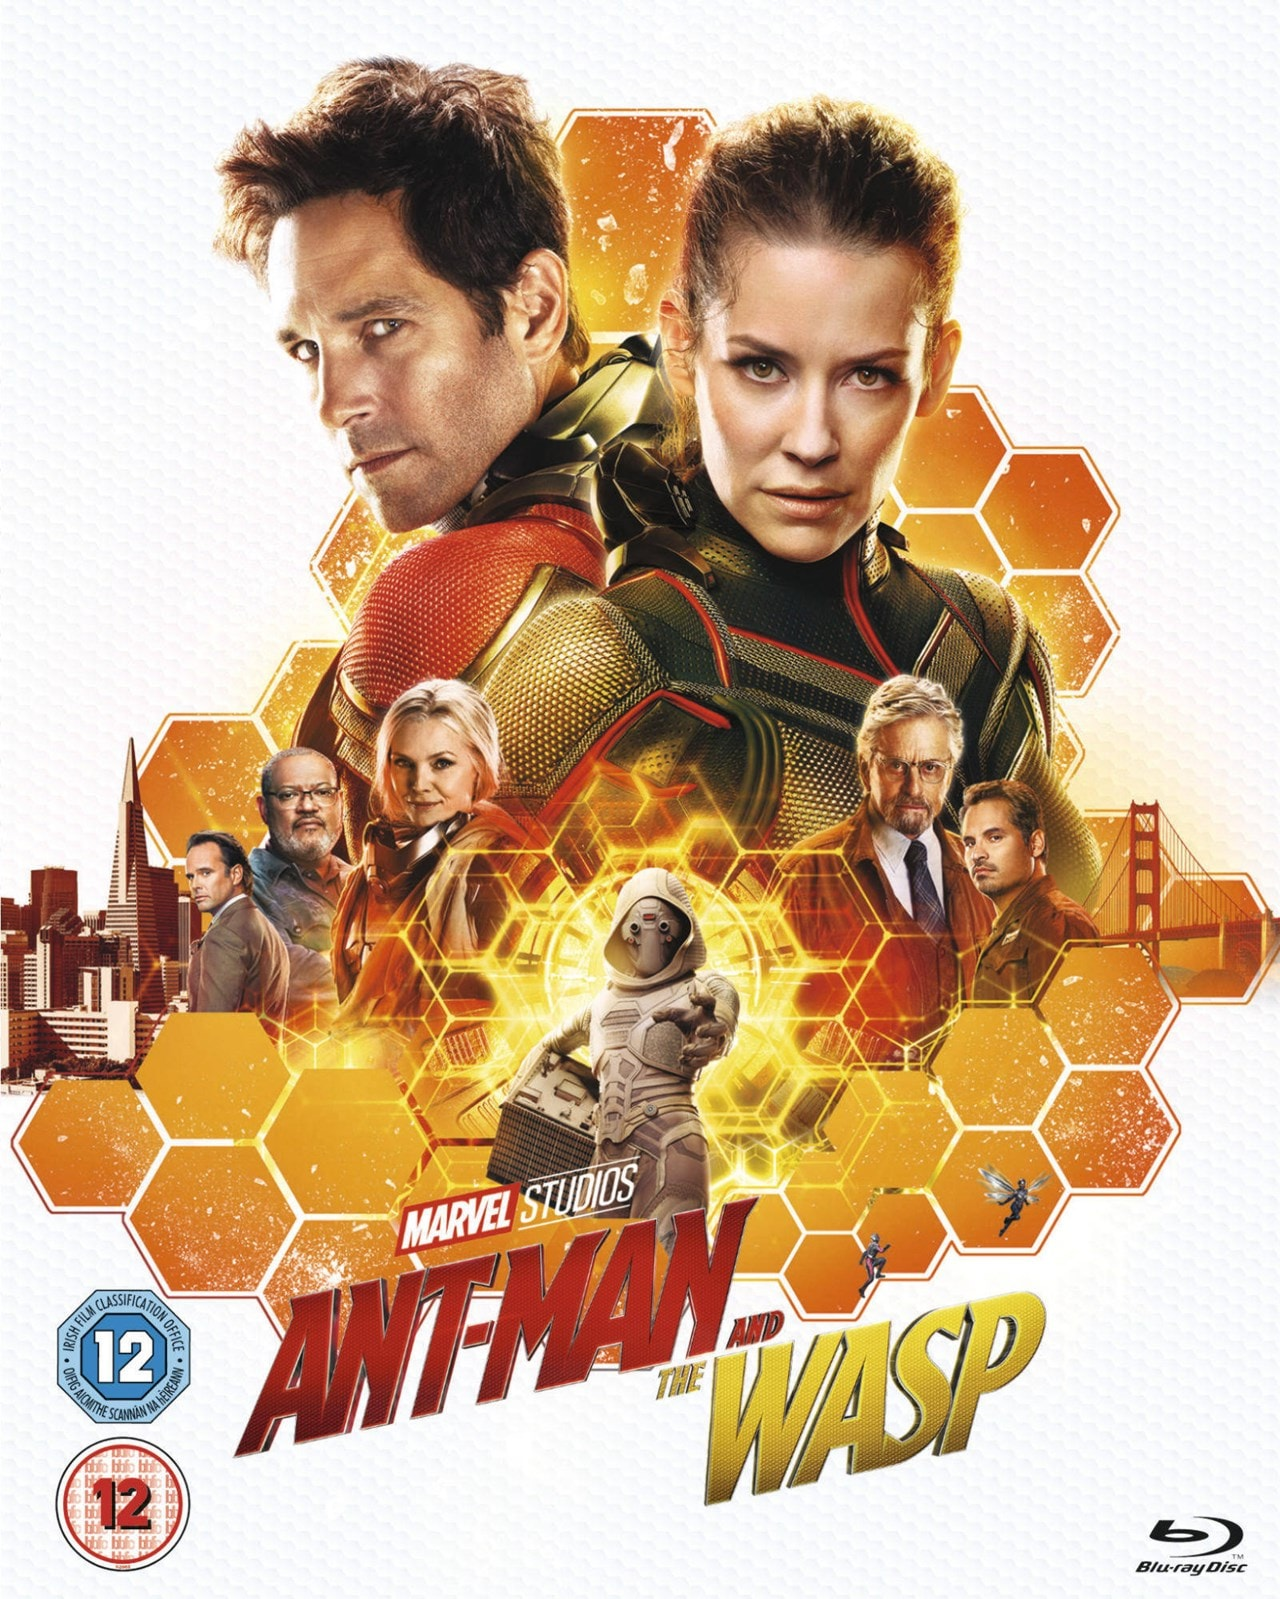 Ant-Man and the Wasp - 3